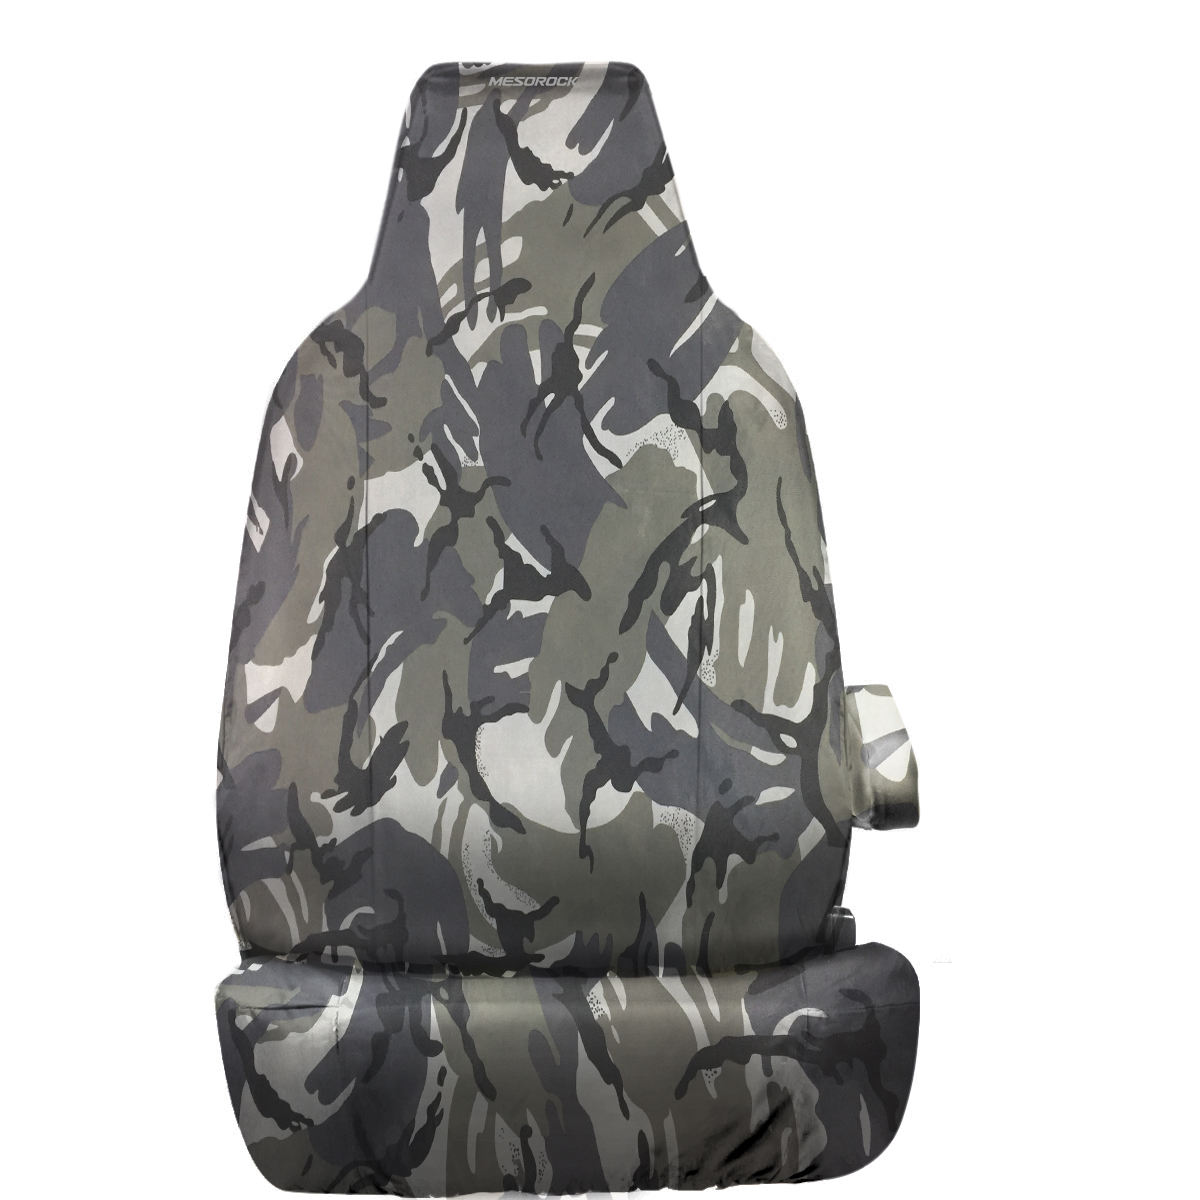 Waterproof Military Camouflage Cool Style Universal Car Seat Cover Fit for Vehicles Sedan